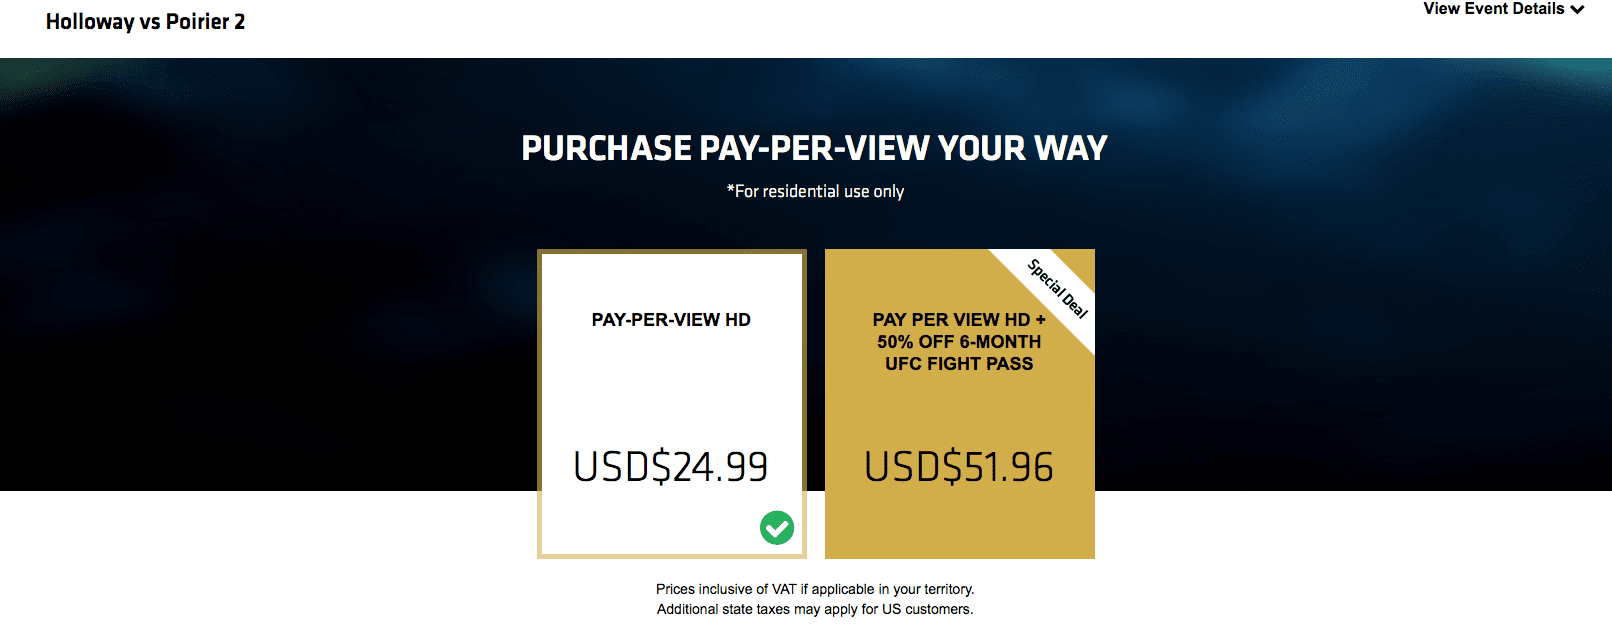 There is No Free UFC, But You Can Get 50% Off